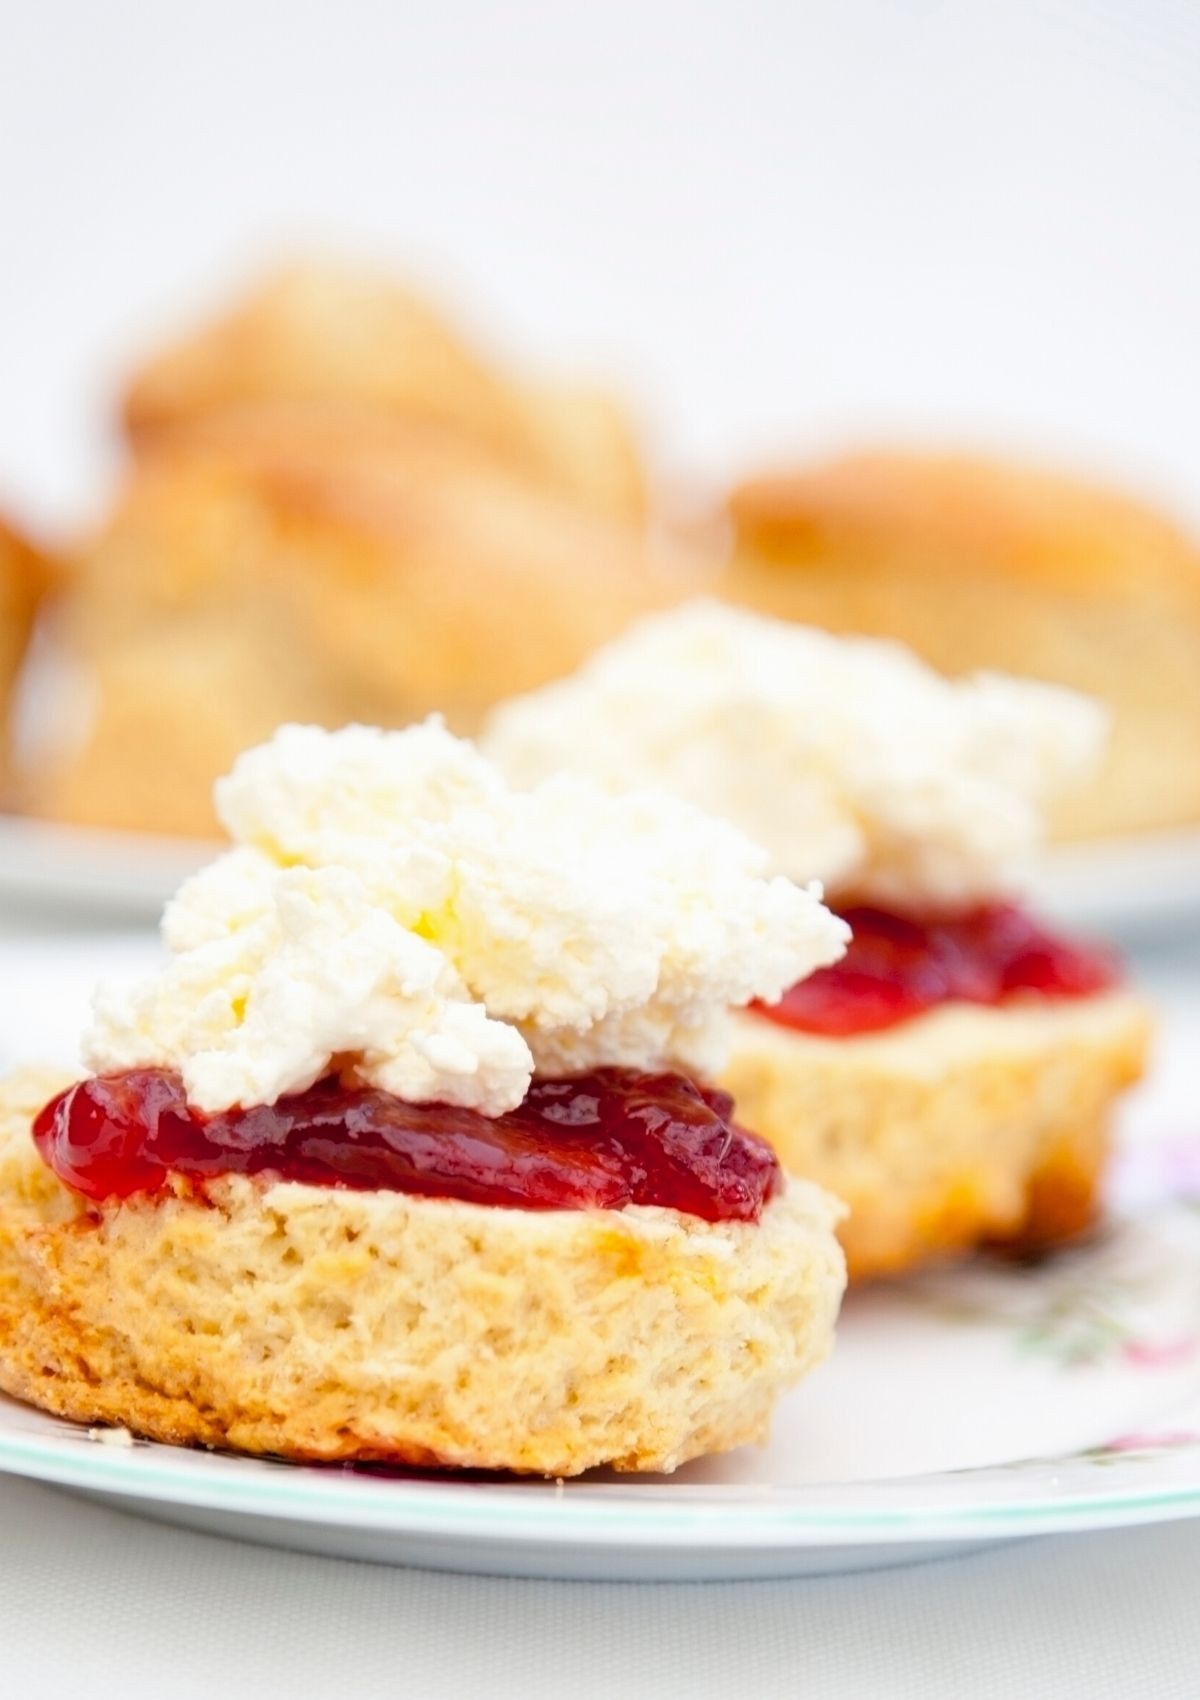 A close up image of scones with strawberry jam and cream.